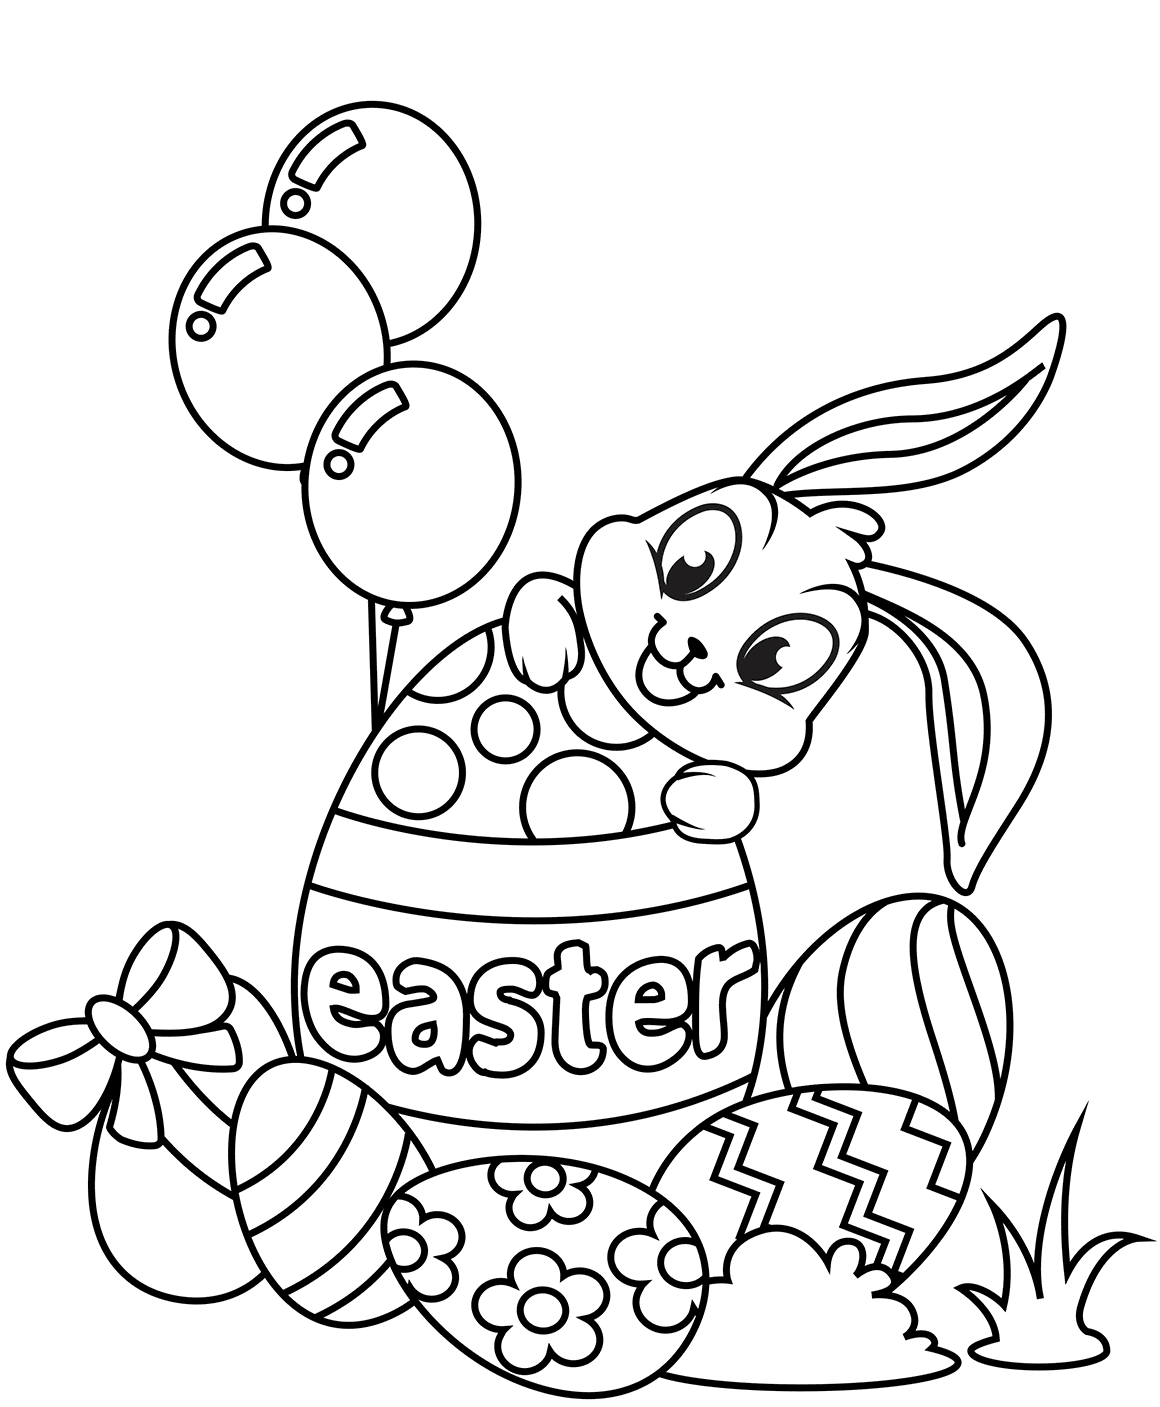 easter bunny printables easter coloring pages easter bunny coloring pages easter bunny easter printables